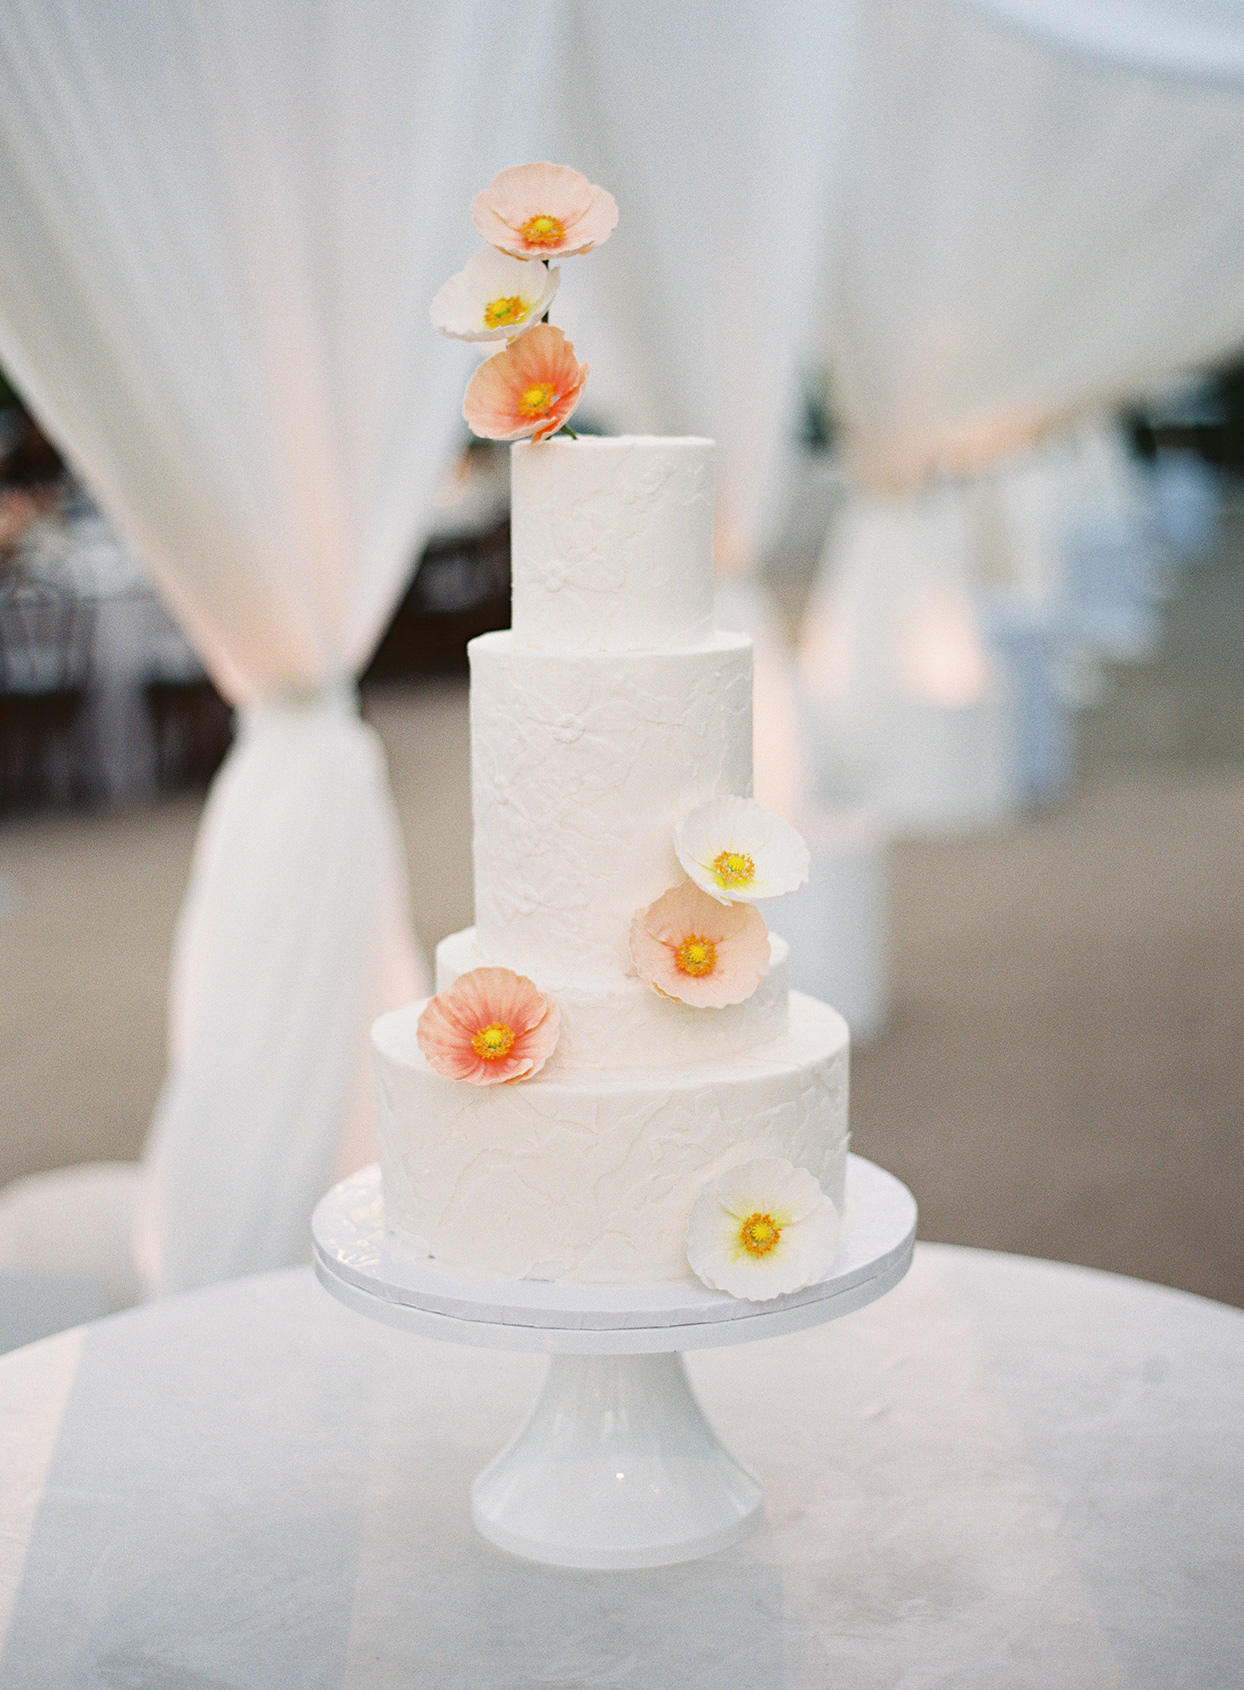 white textured cake with poppy flowers